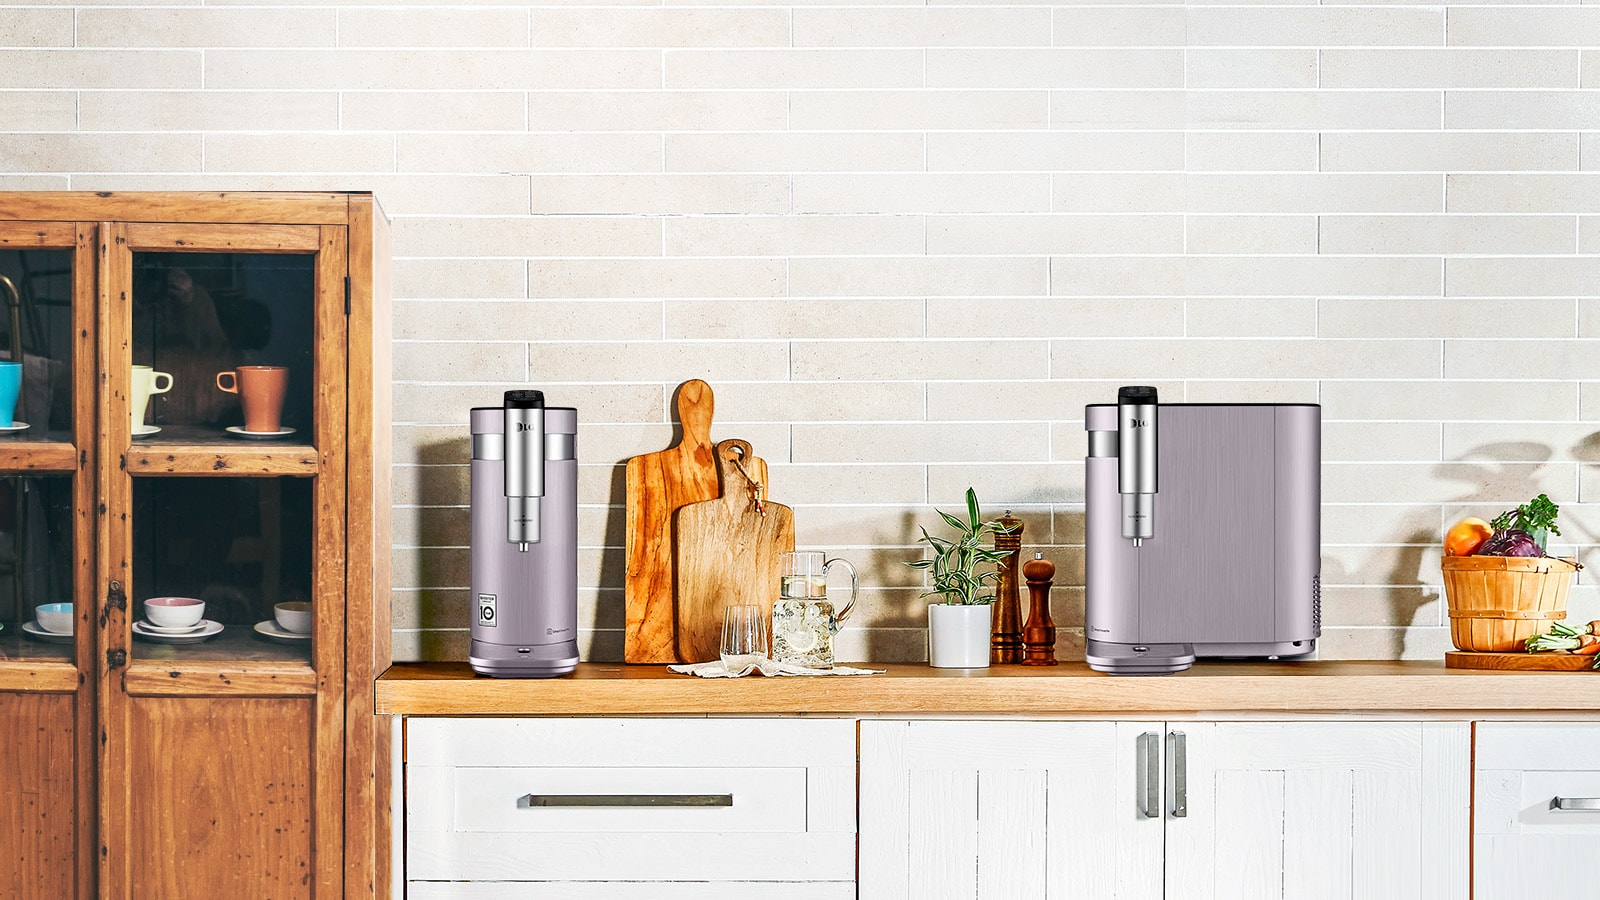 Two water purifiers are shown in a kitchen. One is shown with the thin end forward and the tap on that side. The second is shown with the tap on the longer side to show the possibilities.